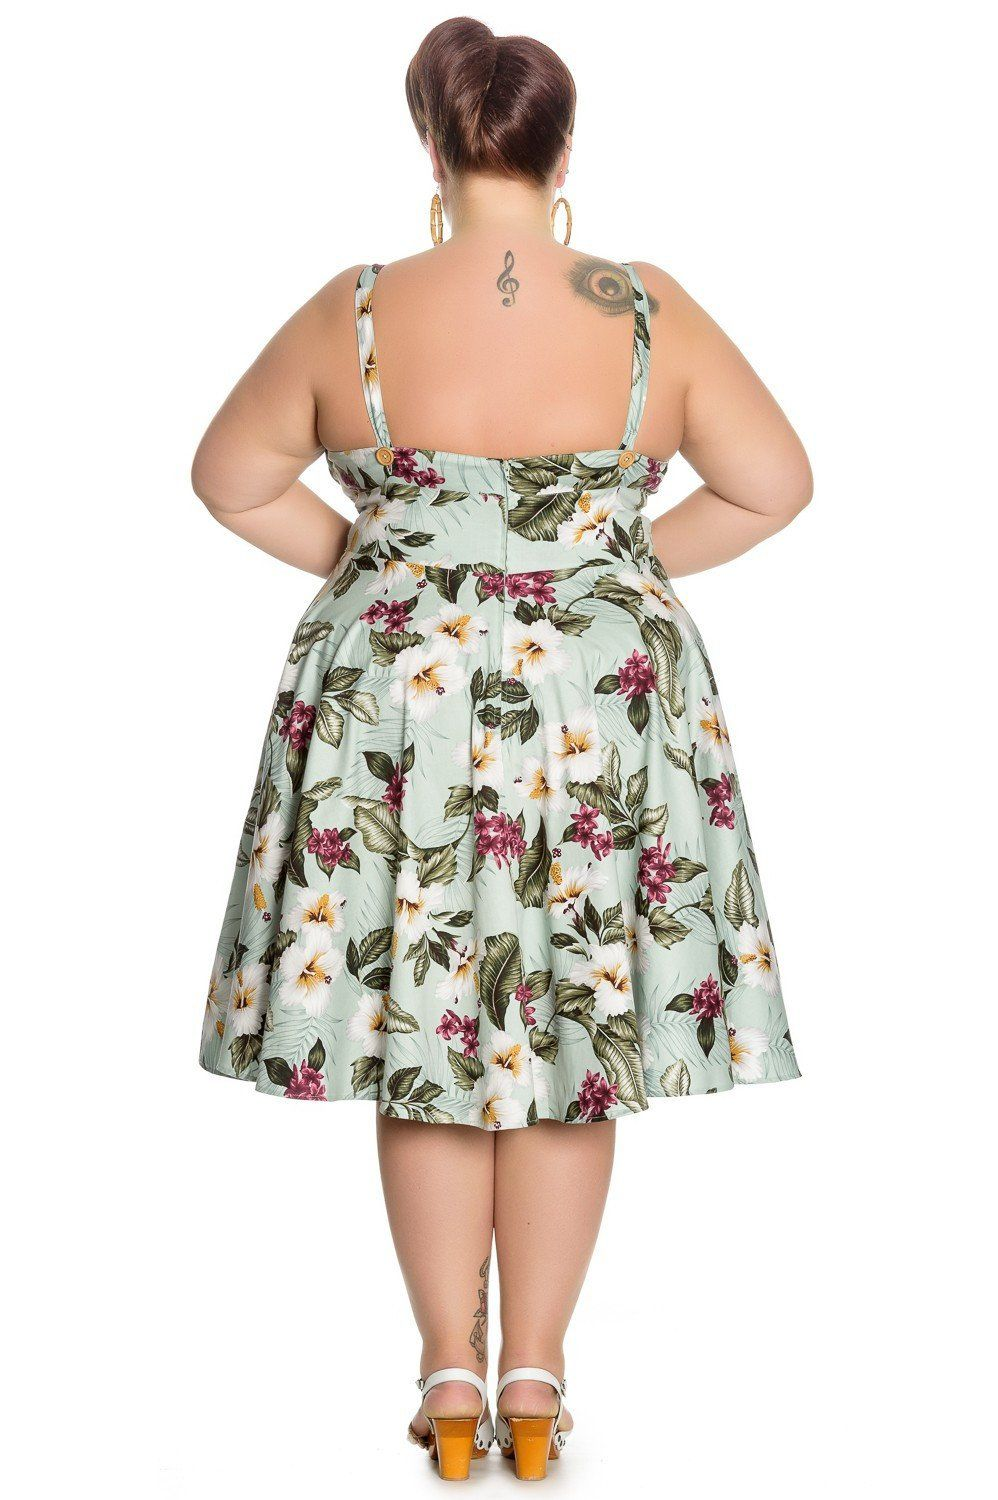 c51c8c26f633 50's flare dress by Hell Bunny with print of hibiscus flowers on a green  background. 11 wooden look buttons at the front. Straps with buttons at the  back to ...